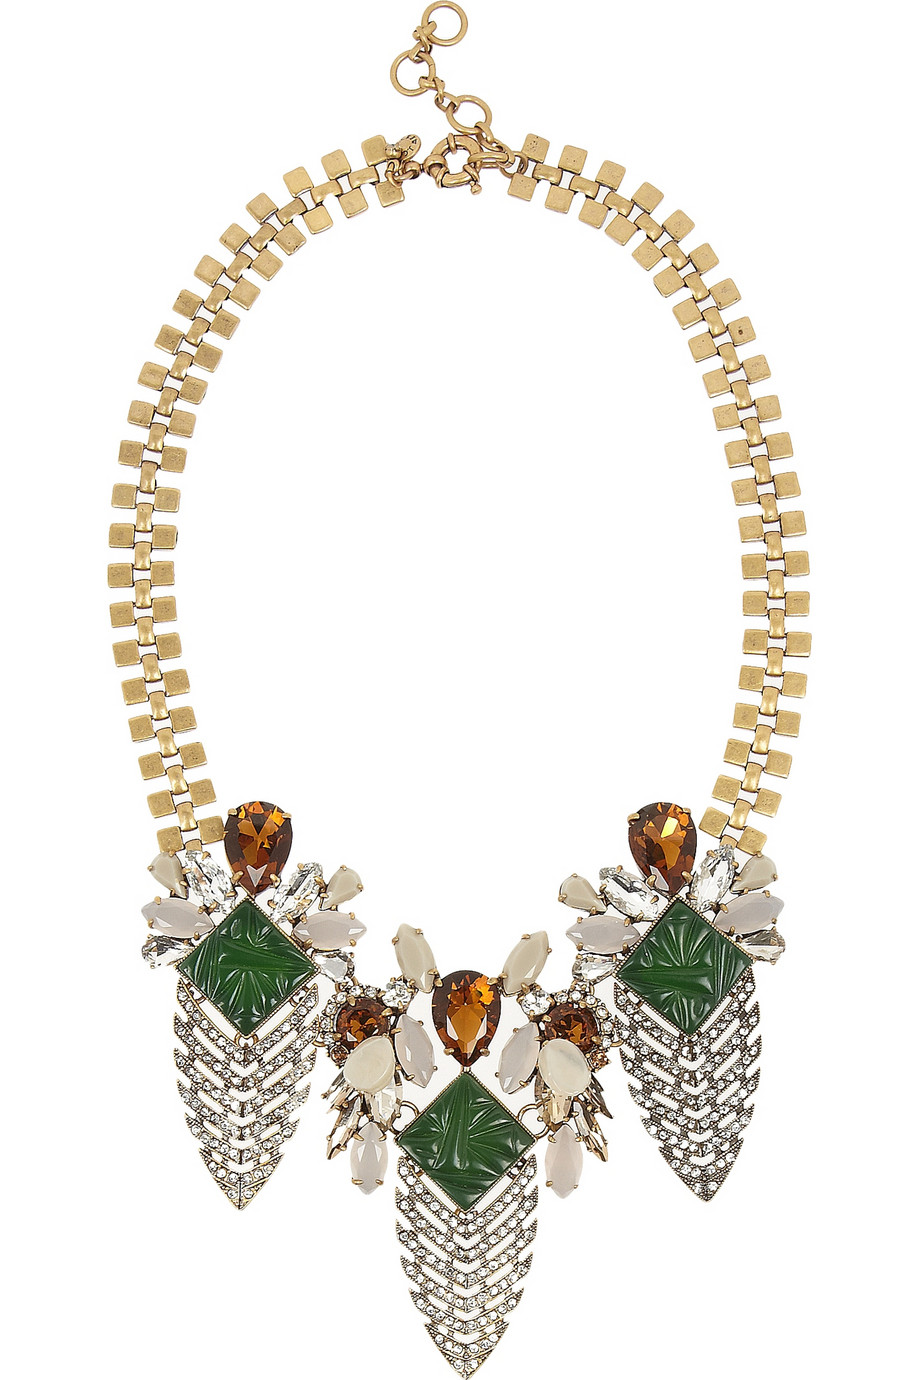 J Crew Arrowhead gold-tone crystal and cubic zirconia necklace